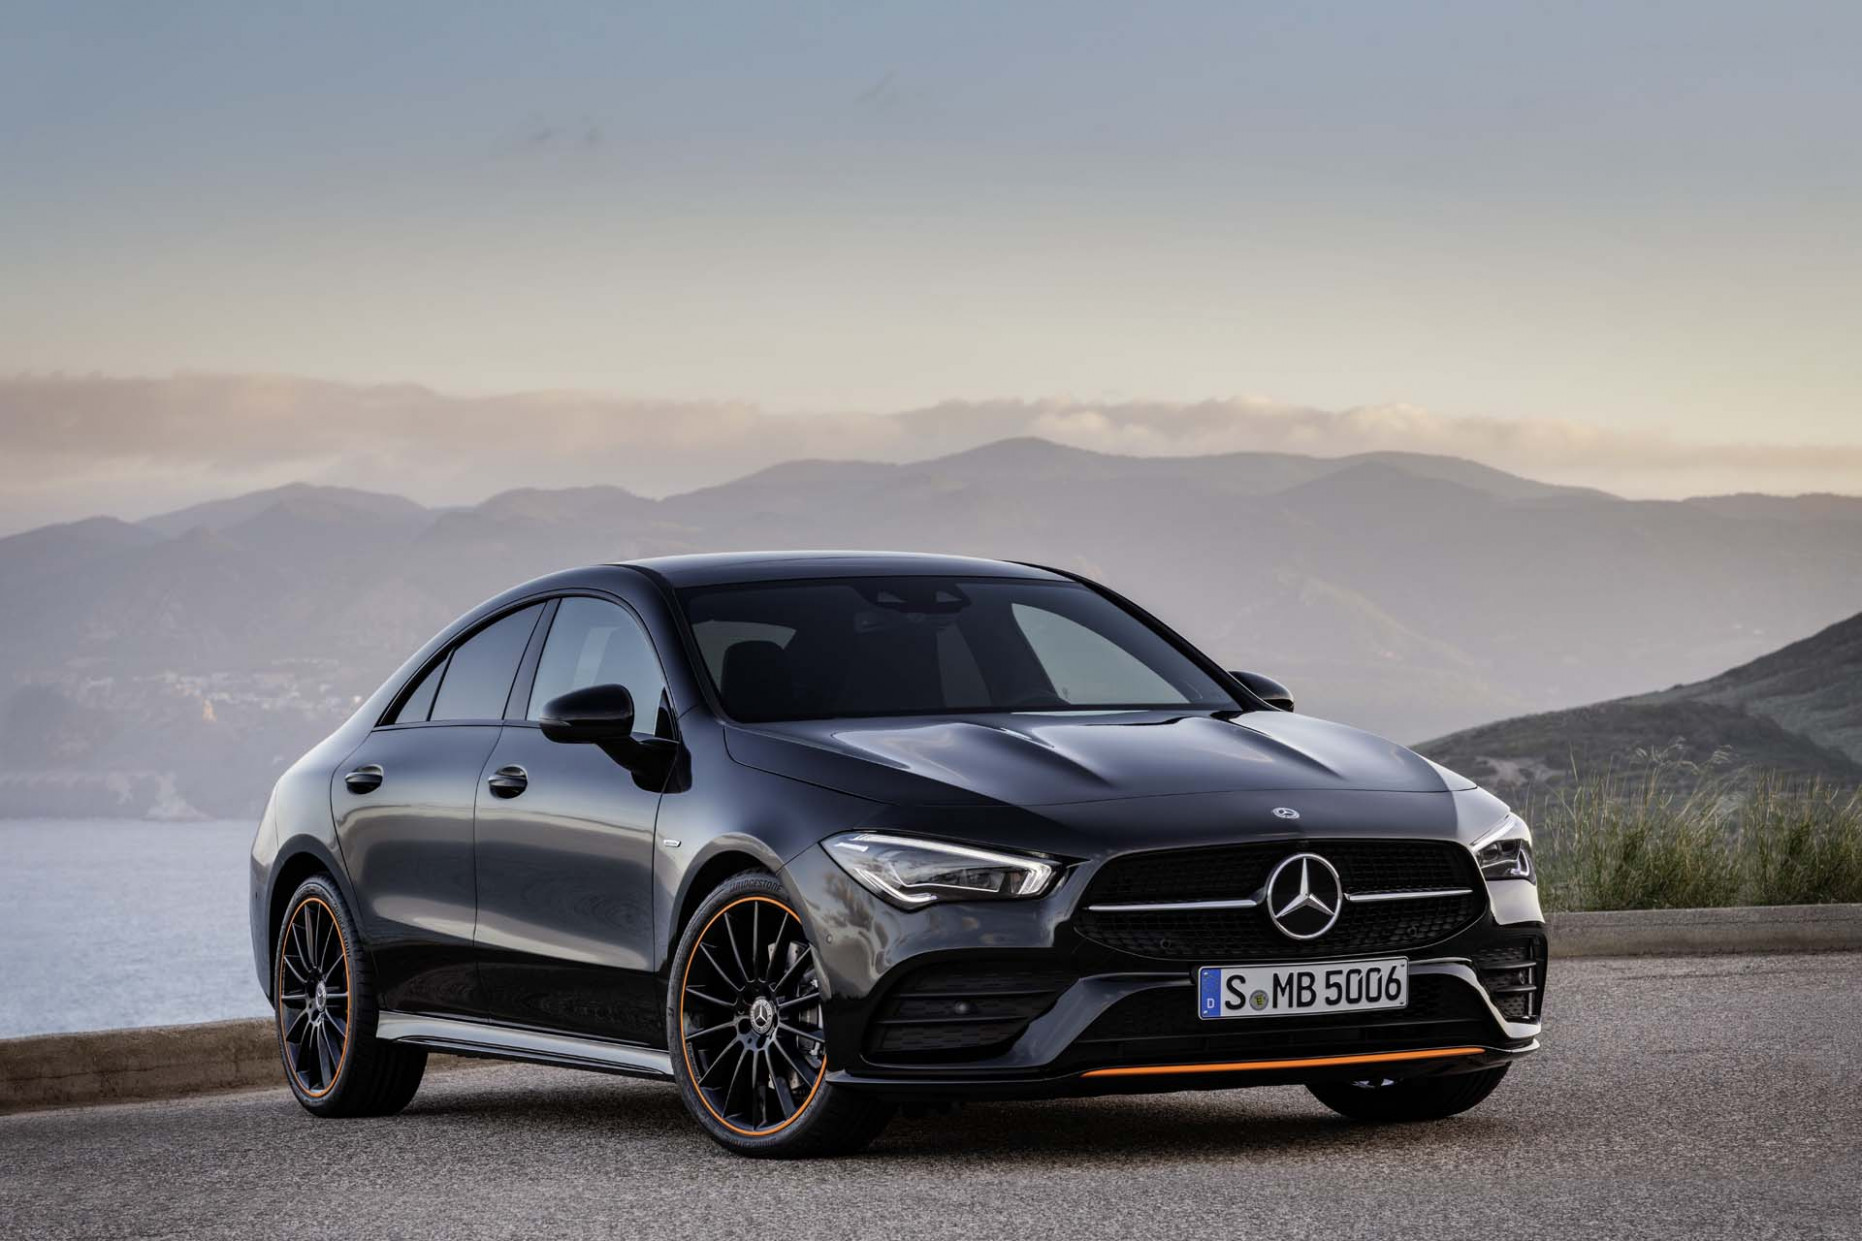 9 Mercedes-Benz CLA Class Review, Ratings, Specs, Prices, and ..